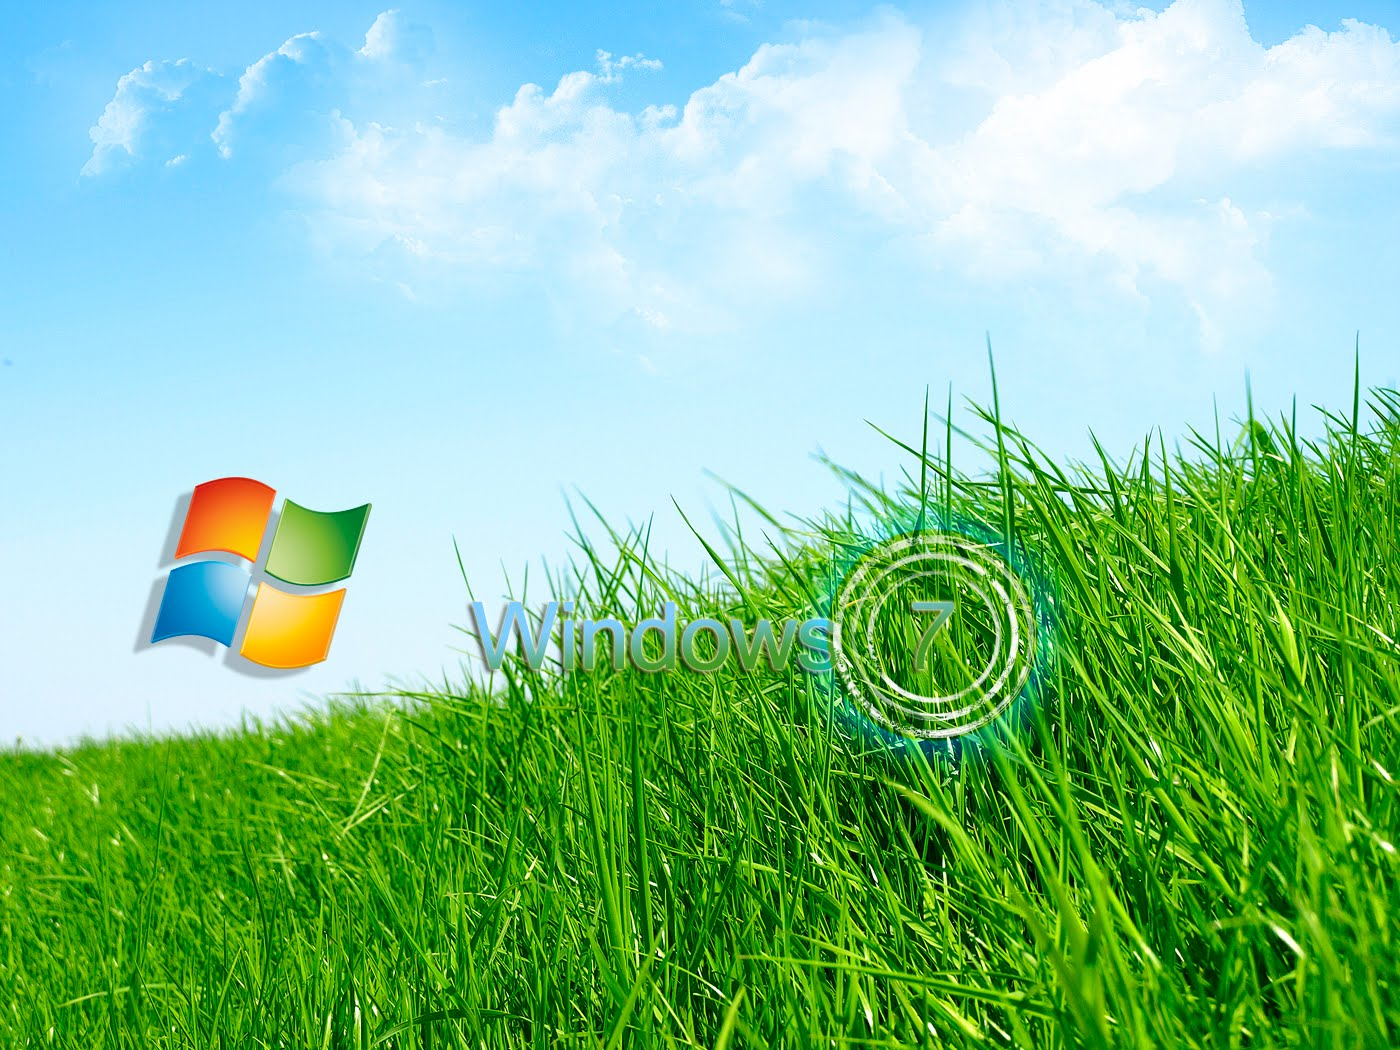 window 7 HD Wallpaper: HD Wallpapers of Windows 7